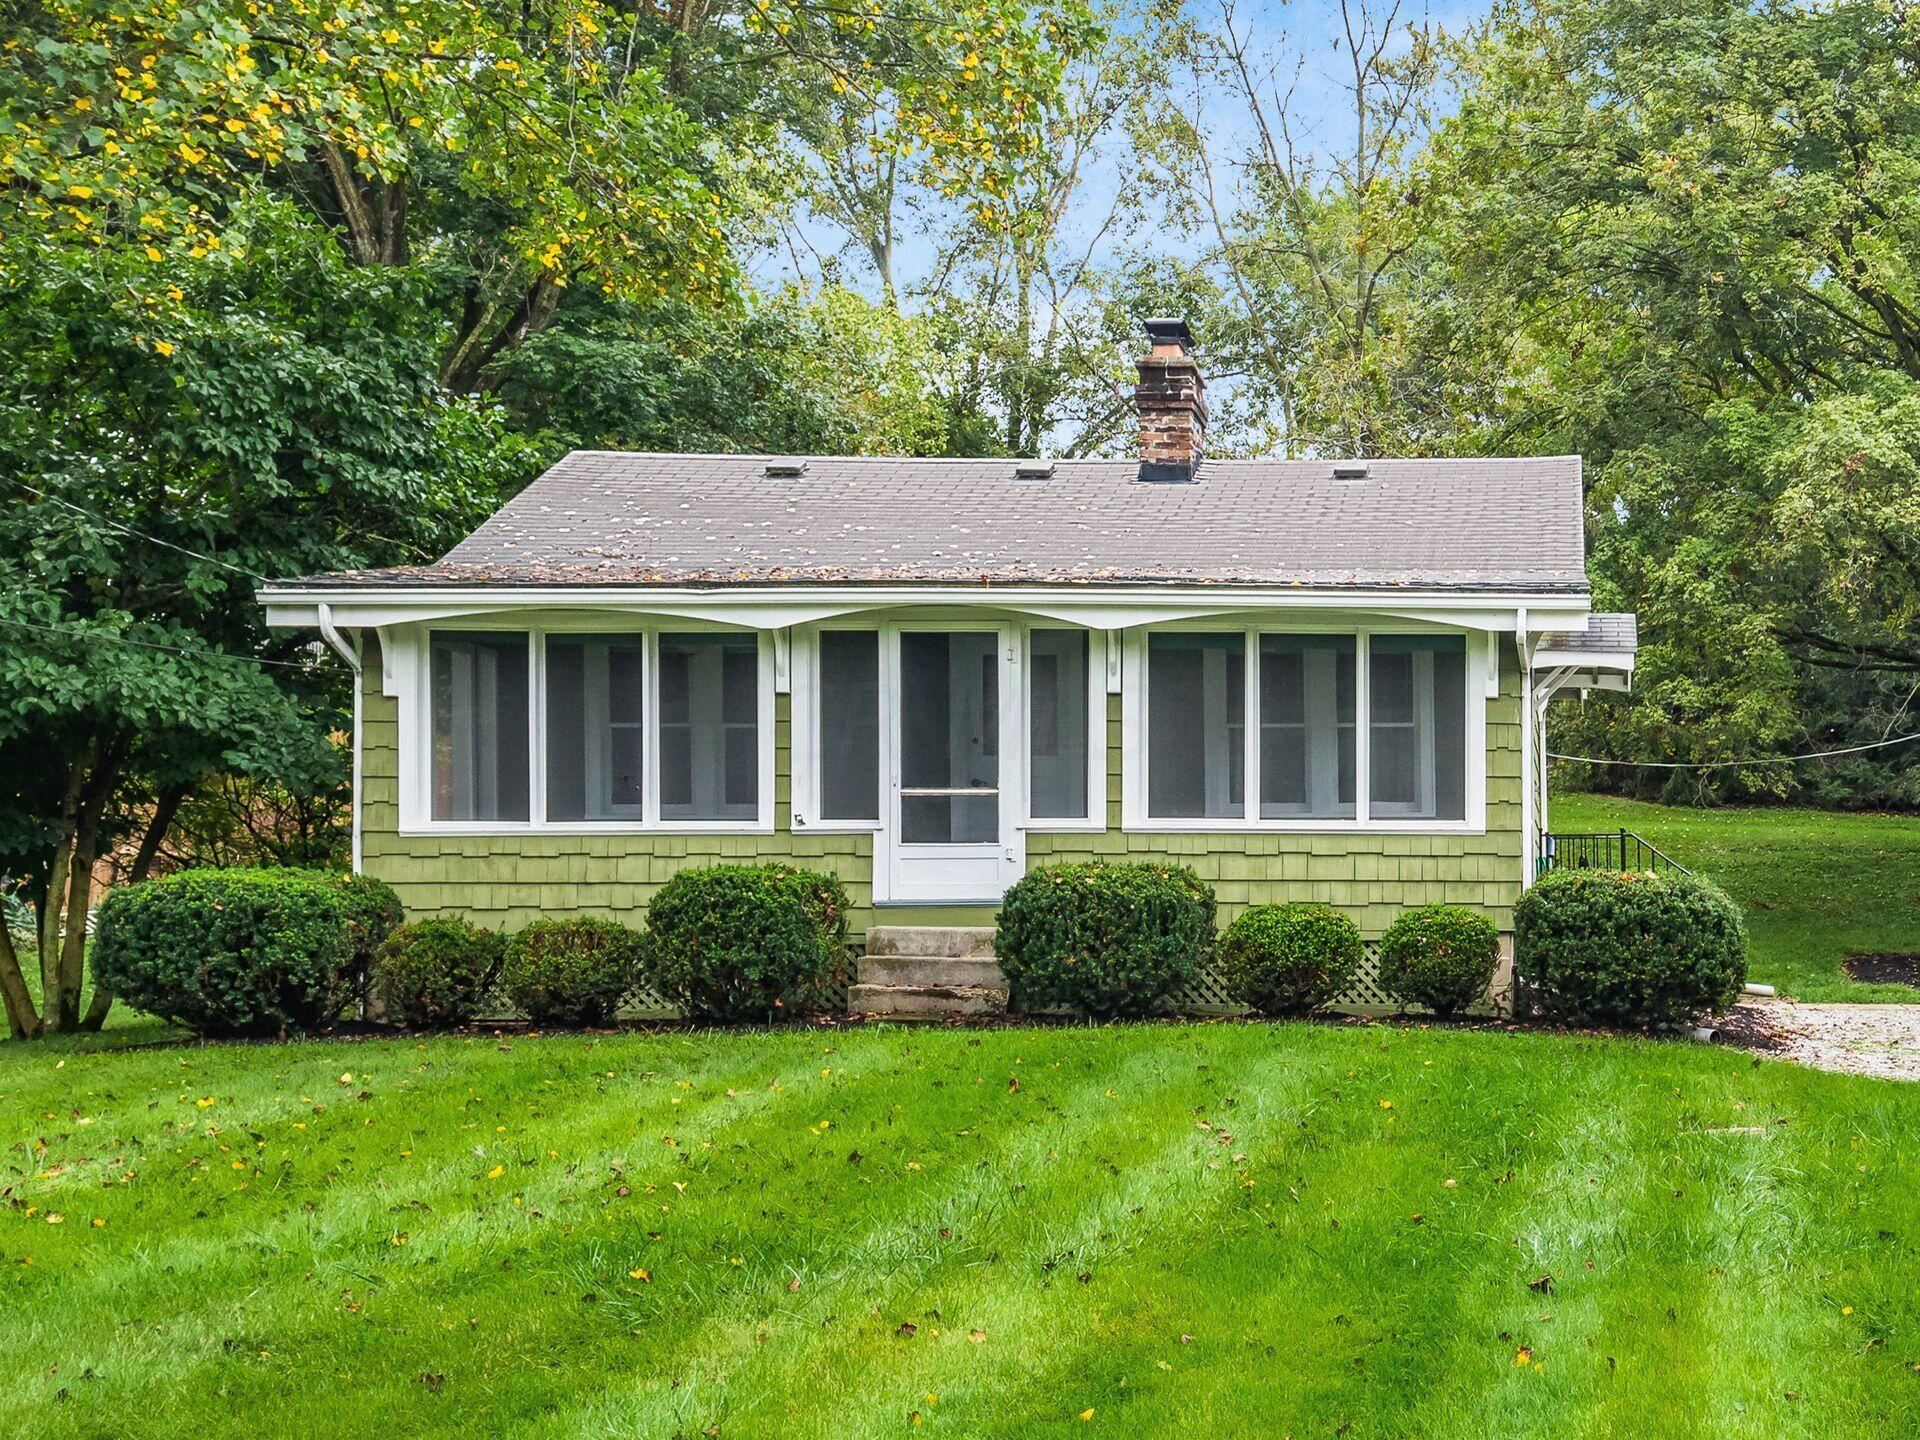 Photo of 4666 Bellepoint Road, Delaware, OH 43015 (MLS # 221037940)